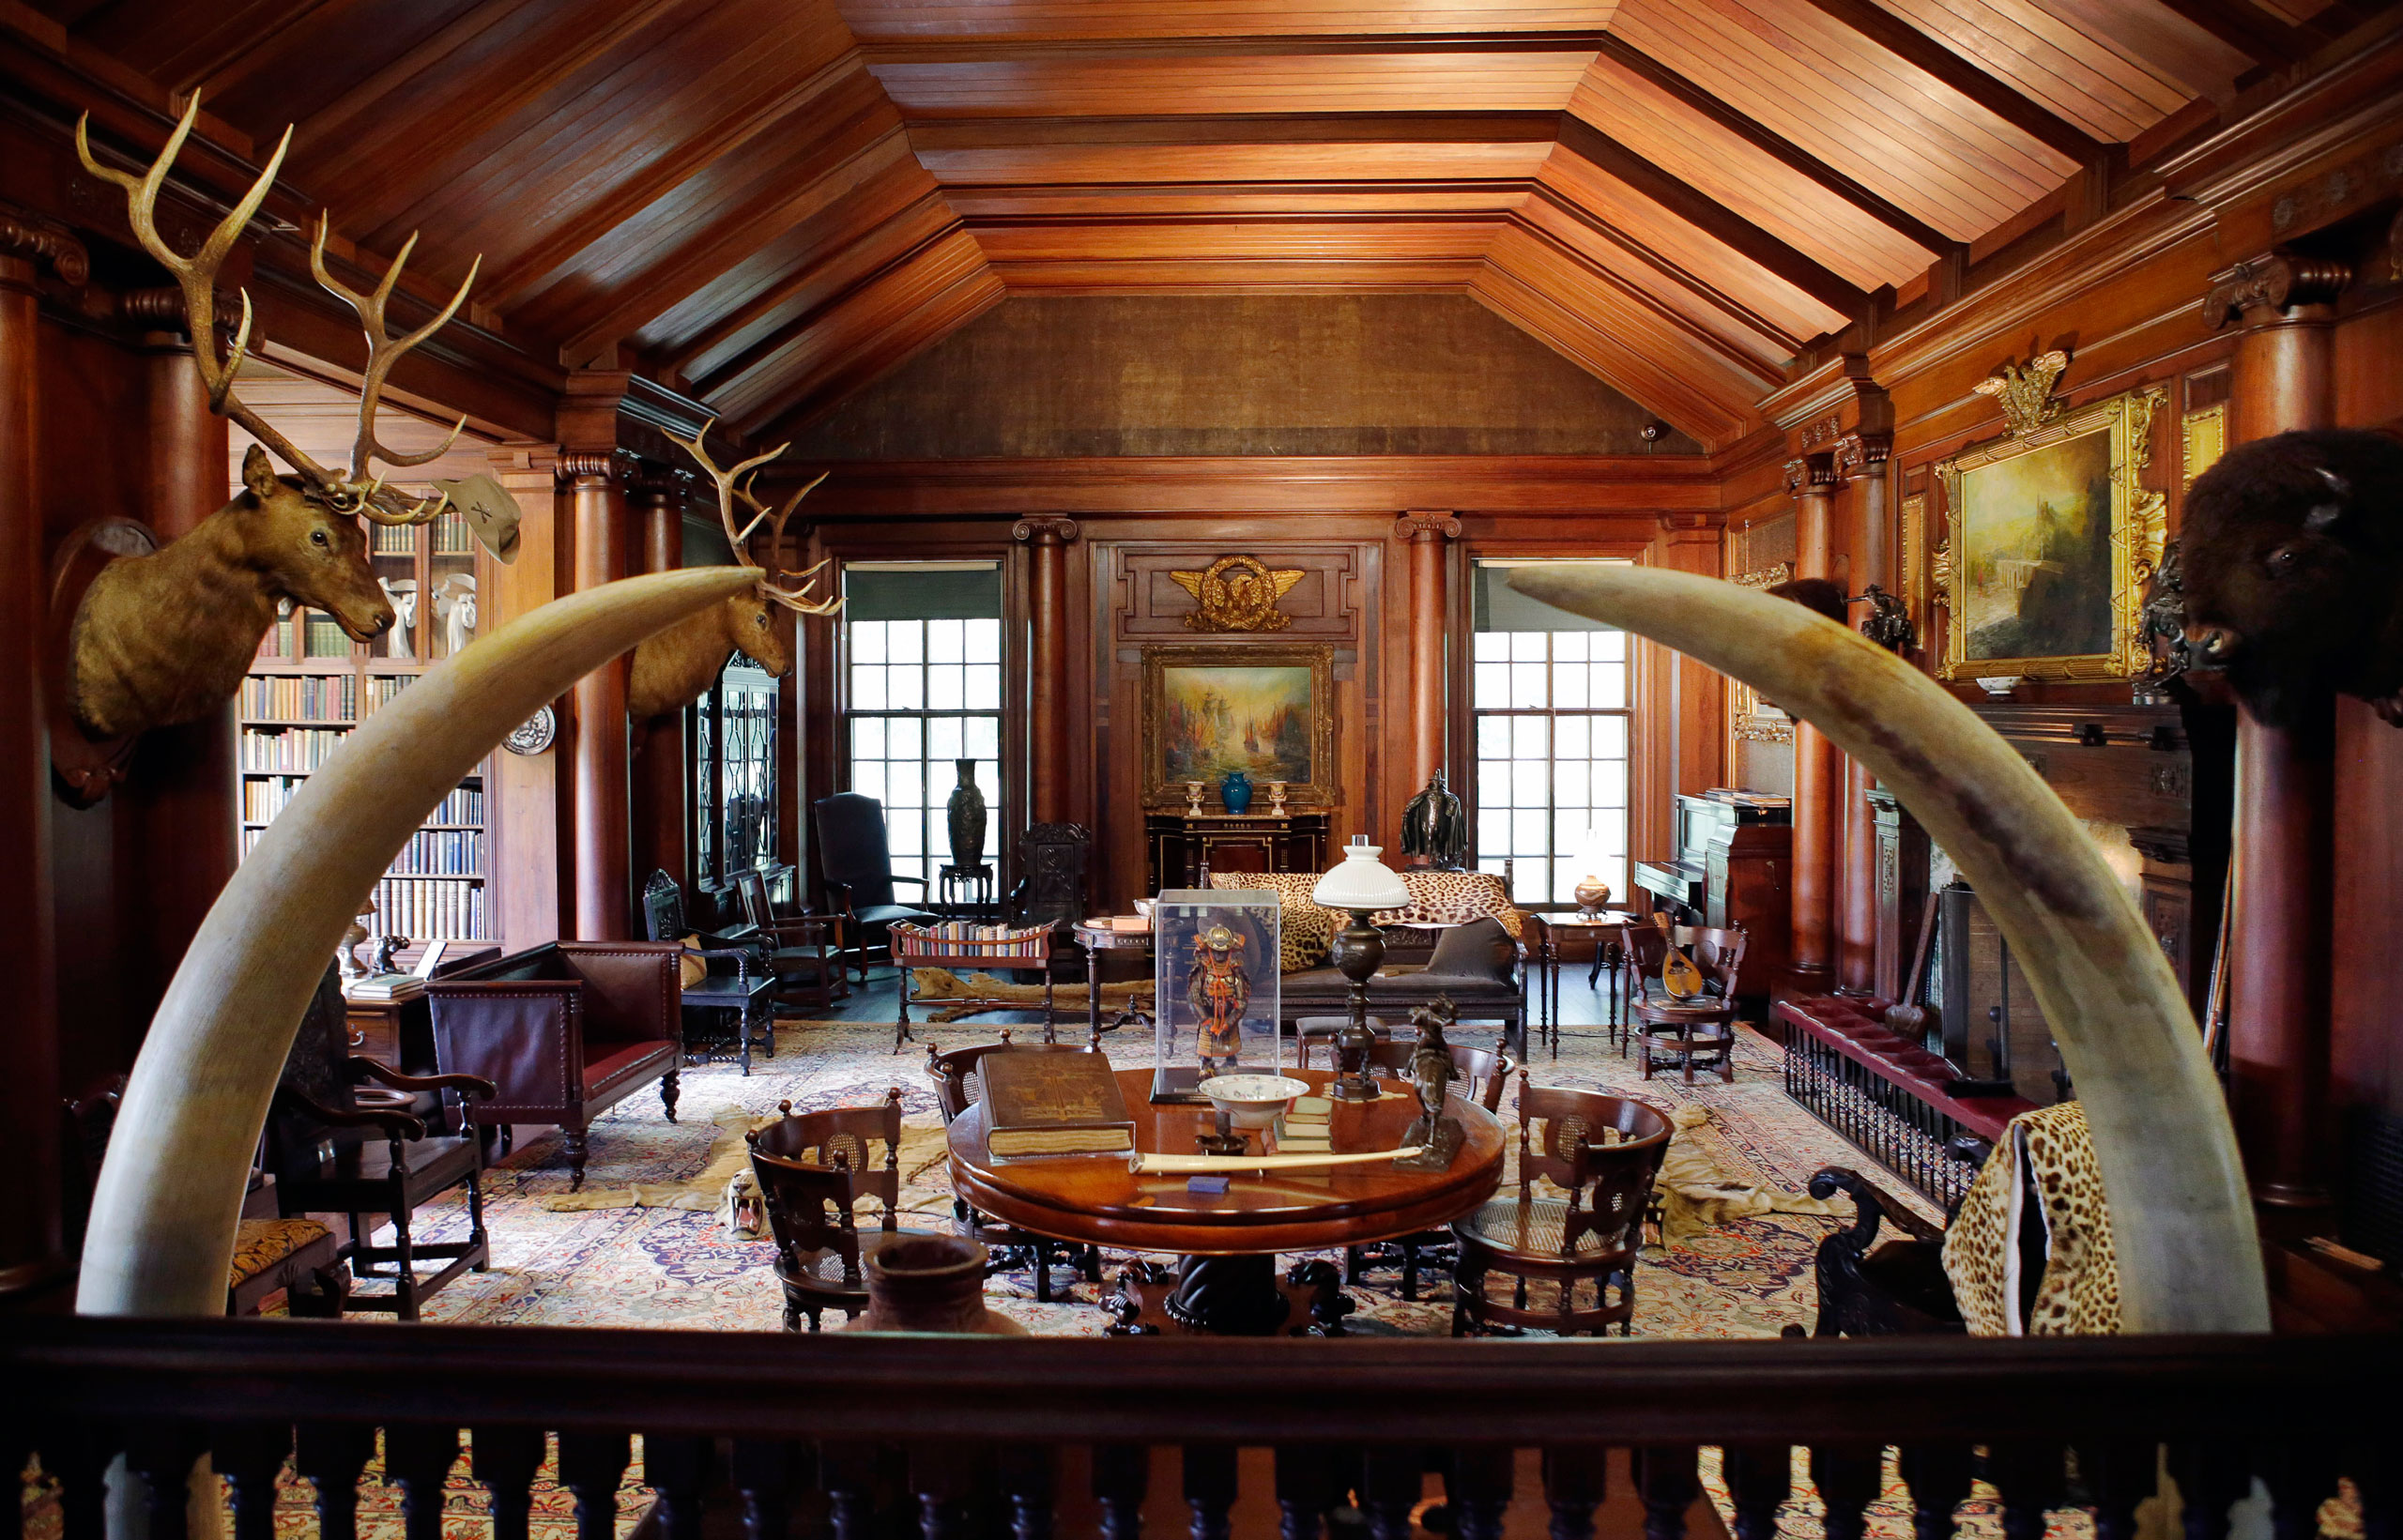 The North Room, President Theodore Roosevelt's  trophy room,  at Sagamore Hill, his summer White House in Oyster Bay, N.Y., on June 9, 2015.